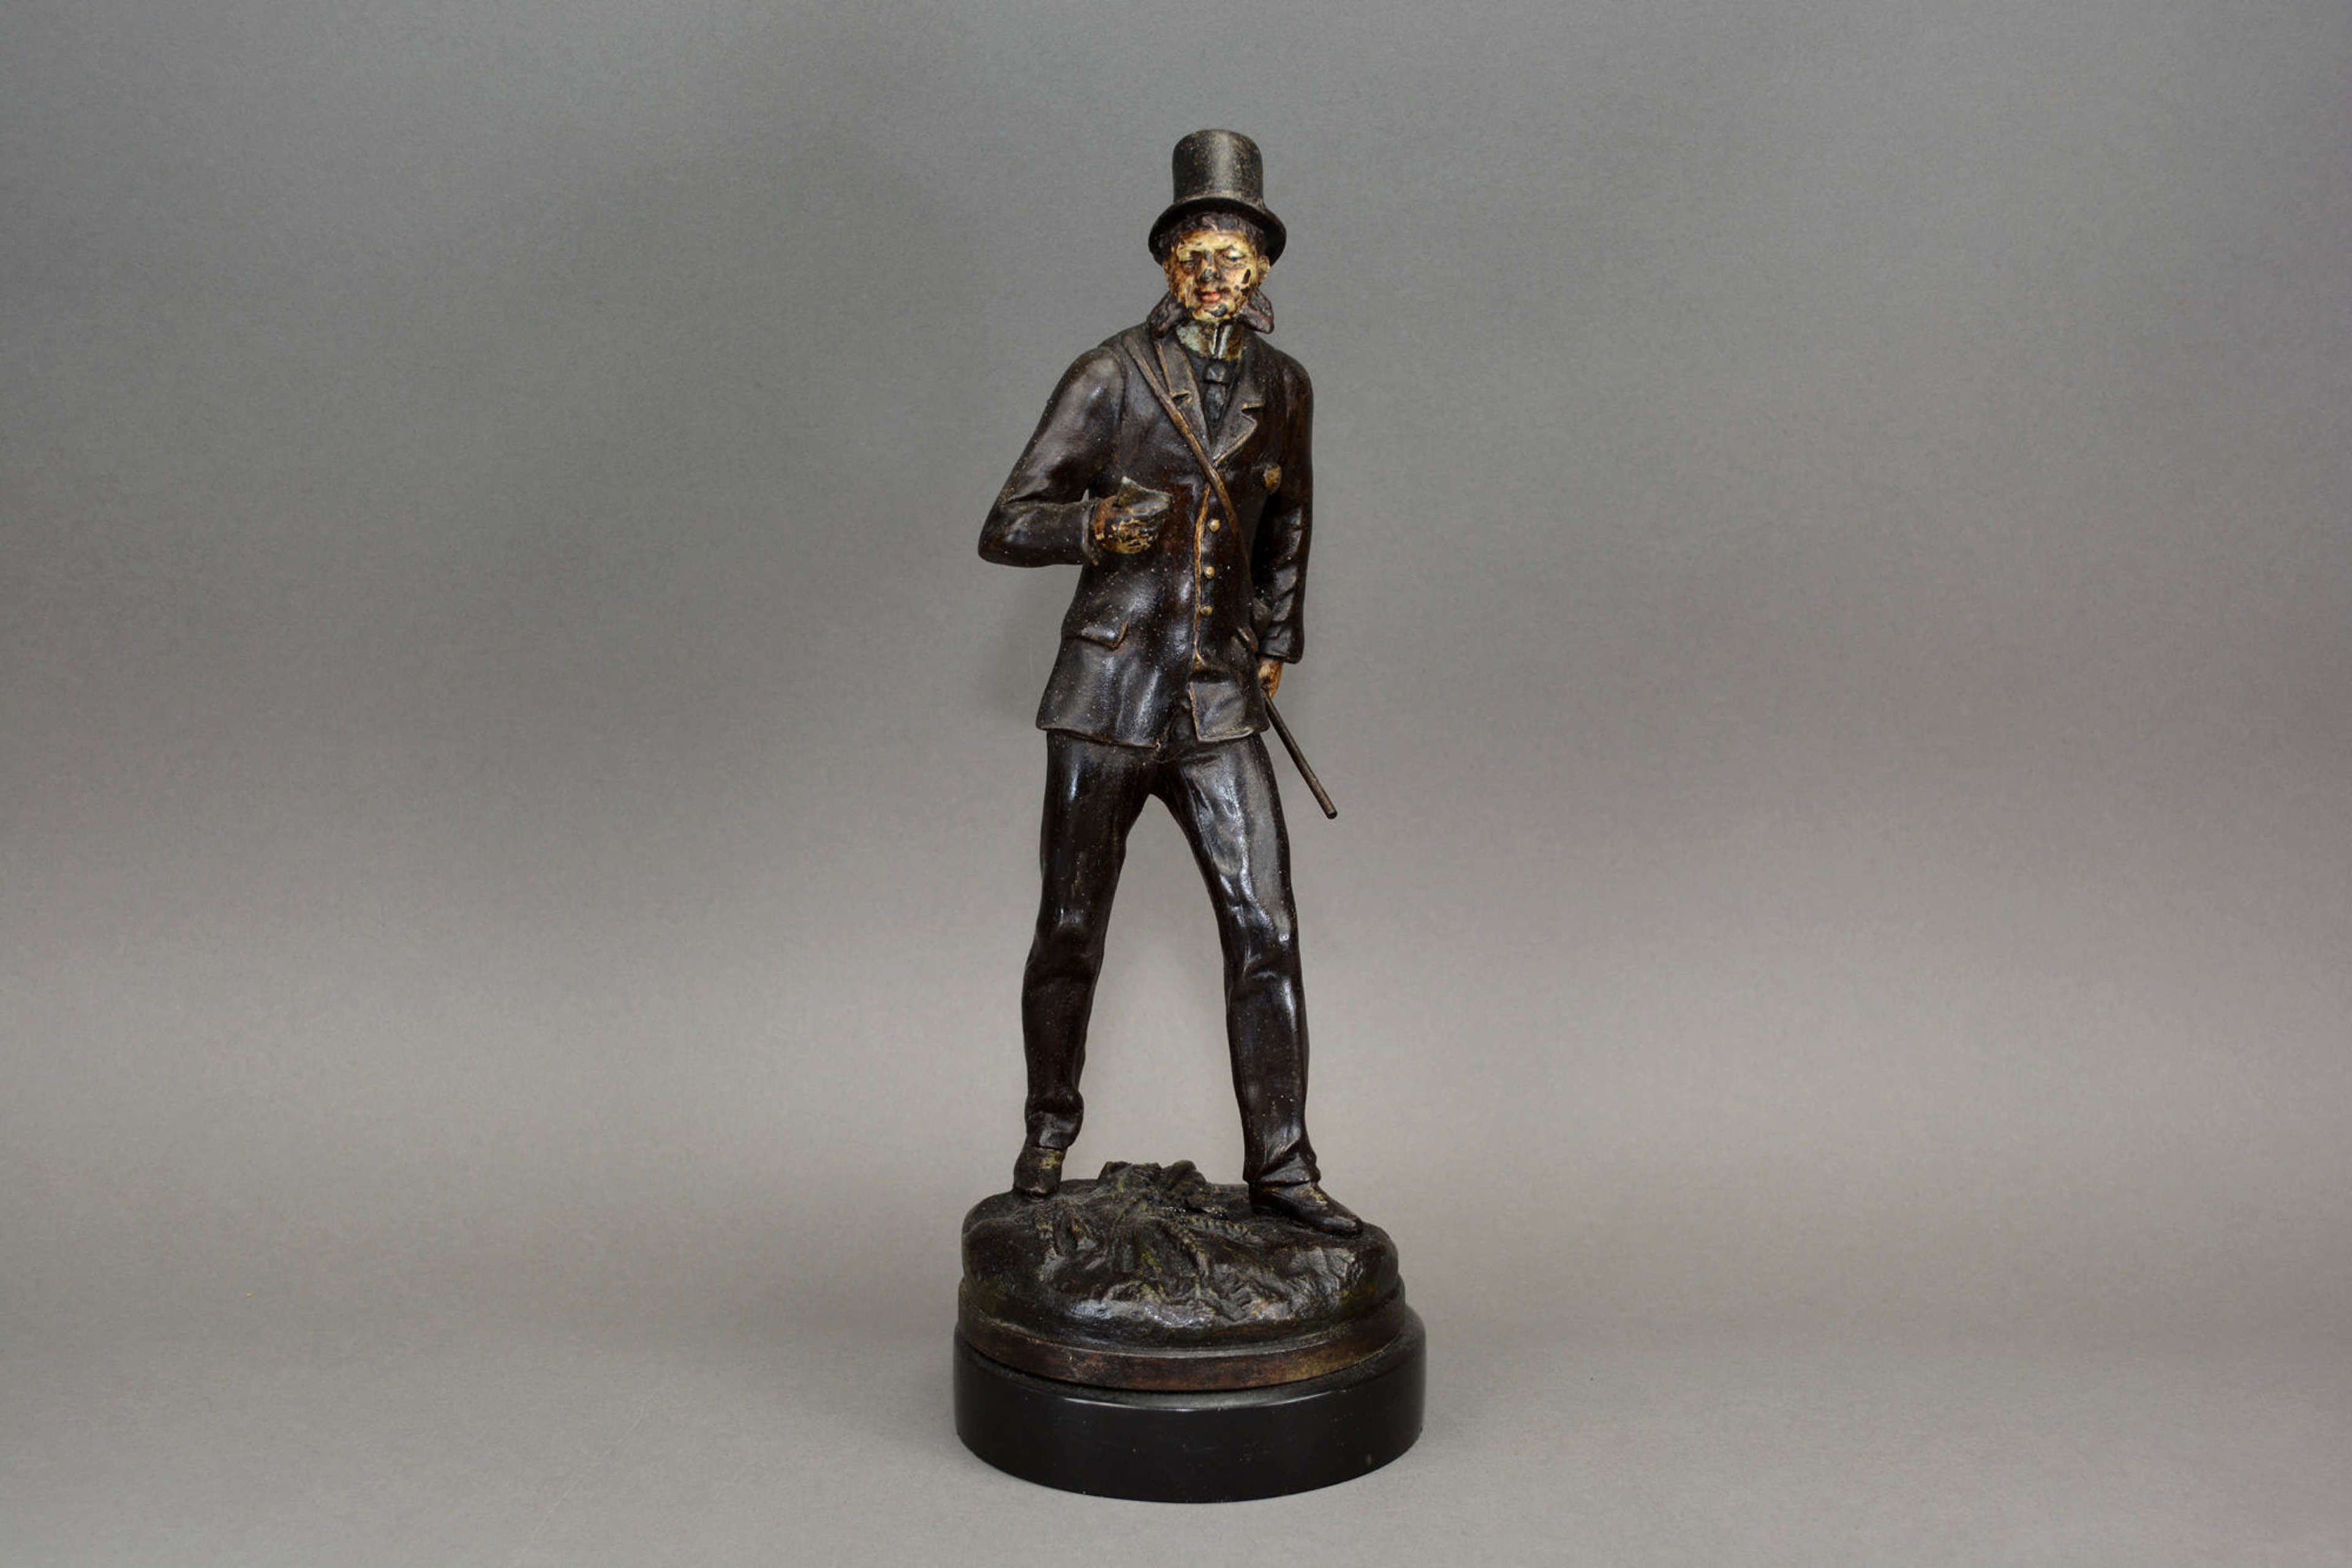 Cold painted spelter figure of a dapper gent